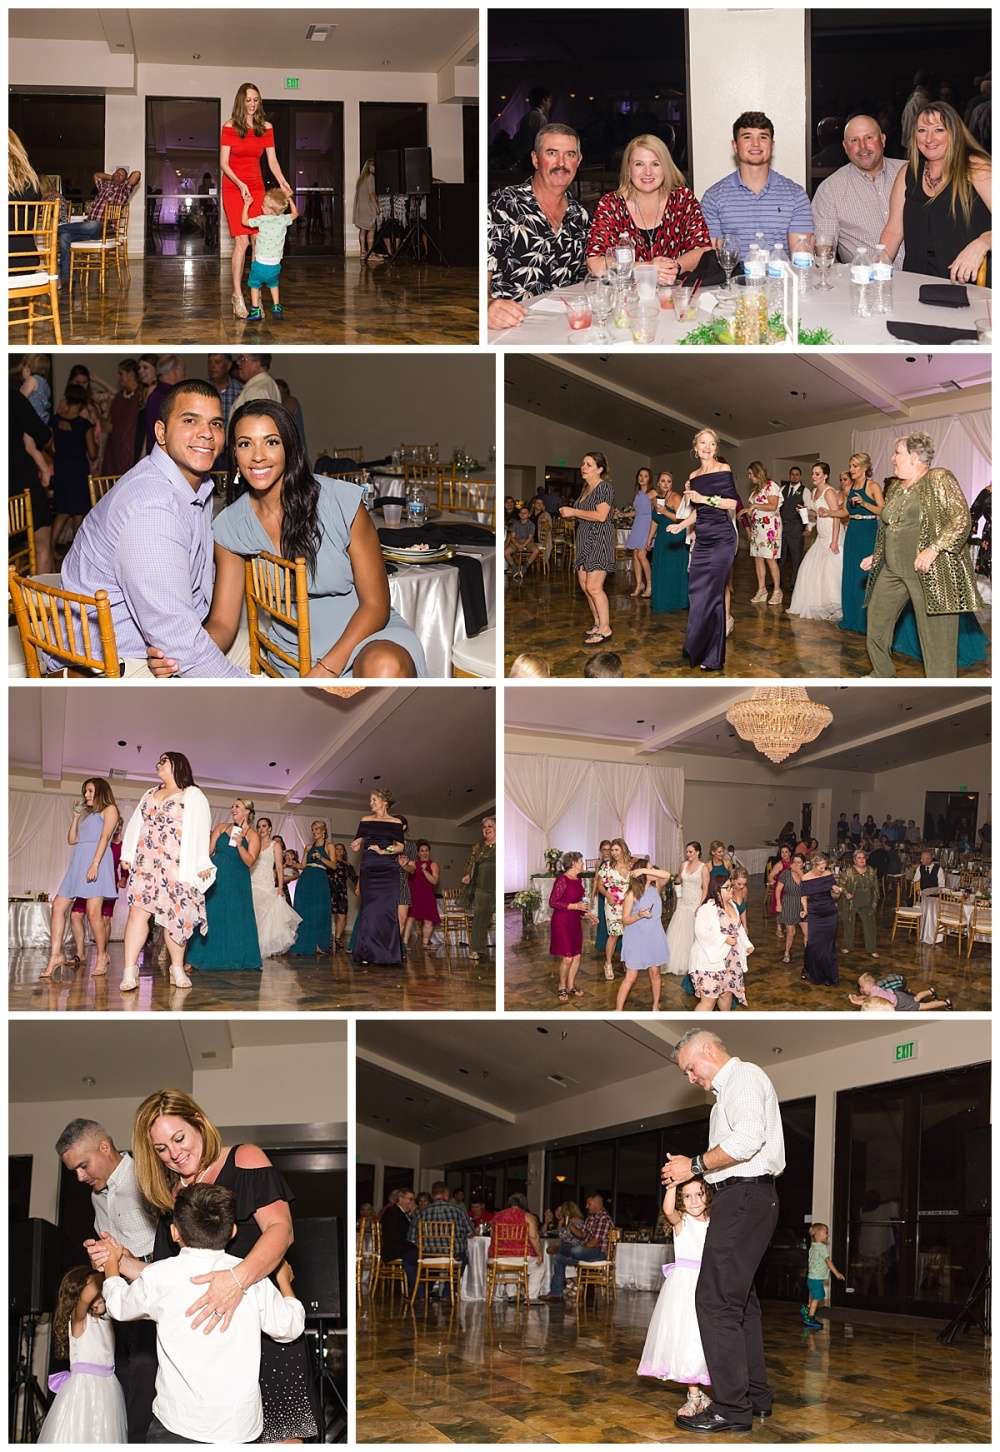 Carly-Barton-Photography-Wedding-Photos-Granberry-Hills-Event-Facility-Ryan-Chelsea-San-Antonio-Texas_0074.jpg